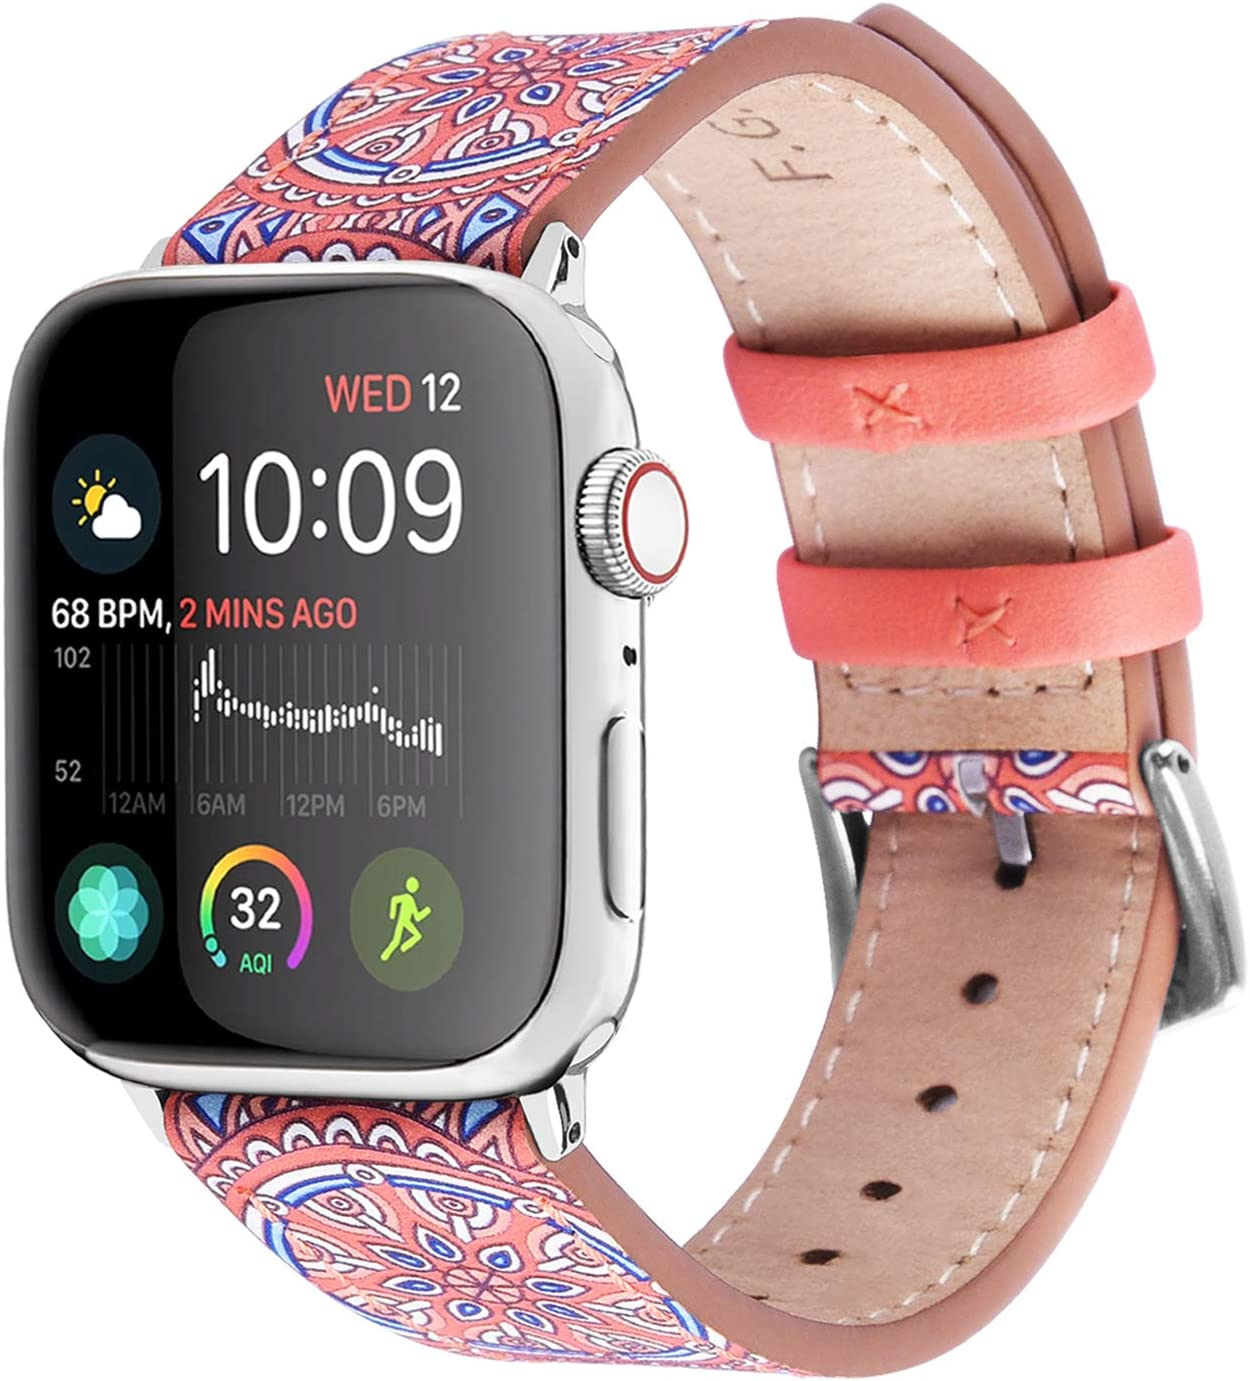 Fullmosa Apple Watch Band 42mm 44mm 40mm 38mm, Galeri Printed Leather Apple Watch Band Compatible for iWatch Series SE/6/5/4/3/2/1,42mm Orange